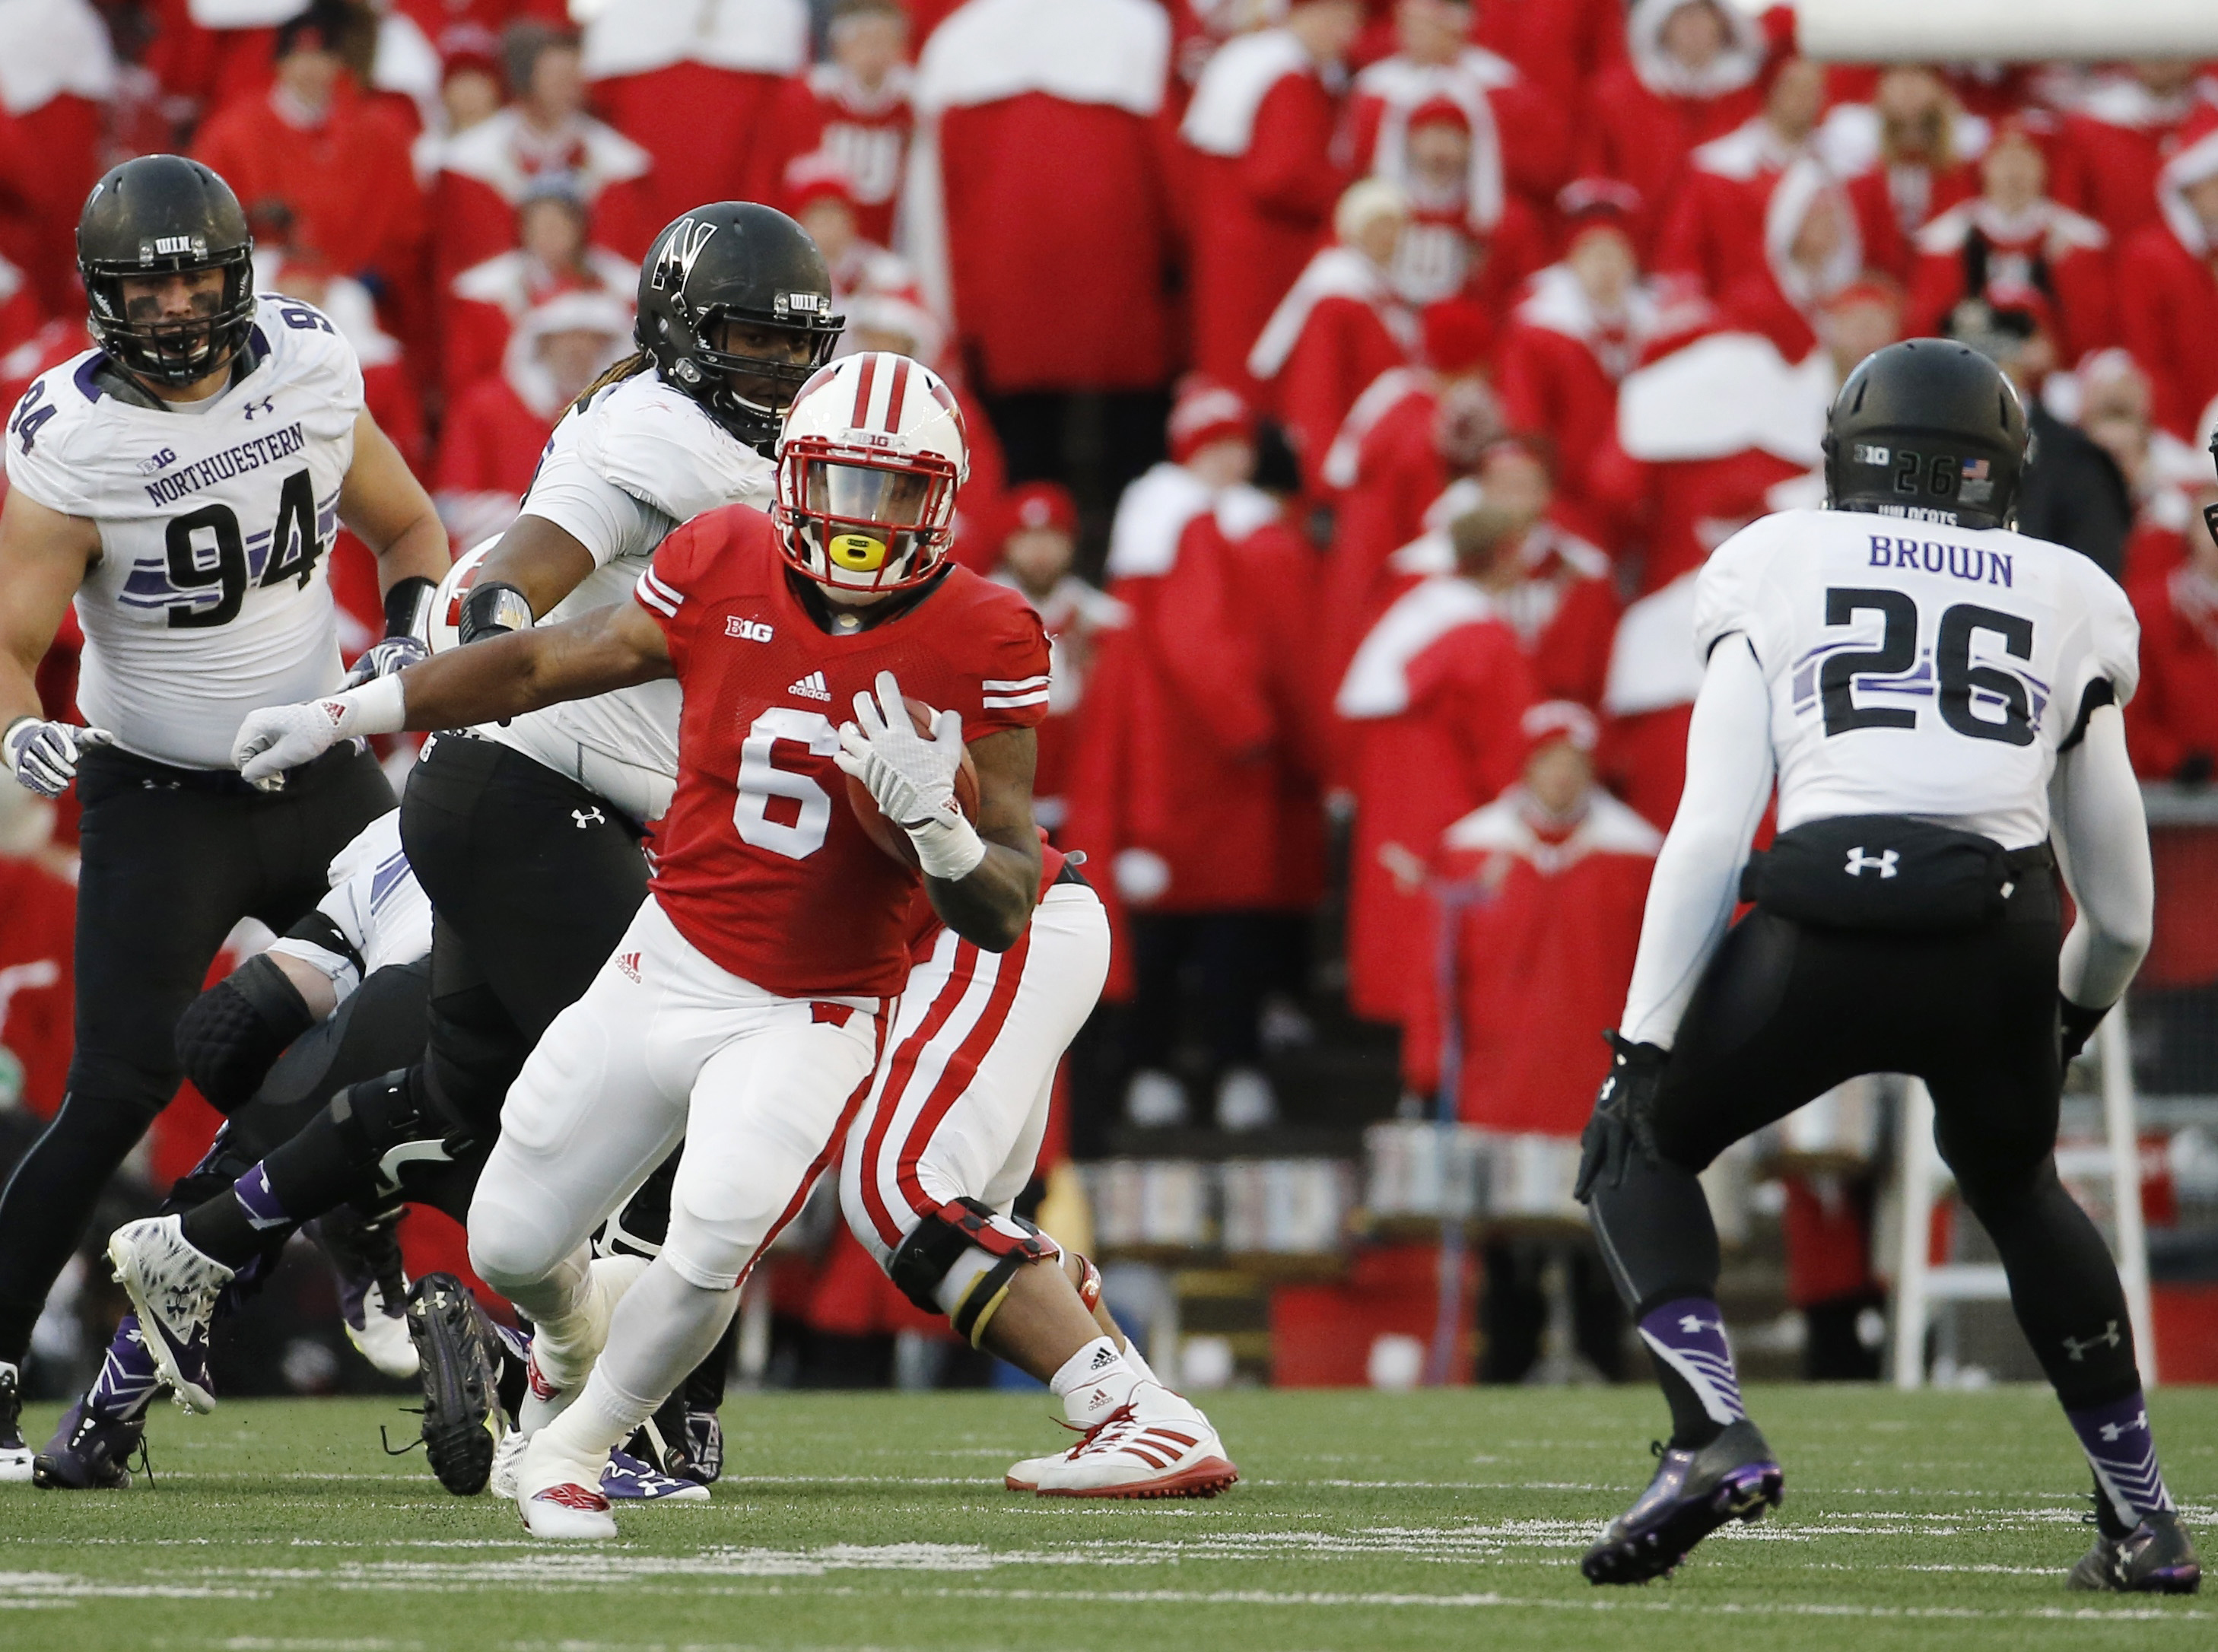 FILE - In this Nov. 21, 2015 file photo, Wisconsin's Corey Clement runs during an NCAA college football game against Northwestern in Madison, Wis. Wisconsin Clement is making a fresh start with a new number. He has switched to No. 24 in spring practice af